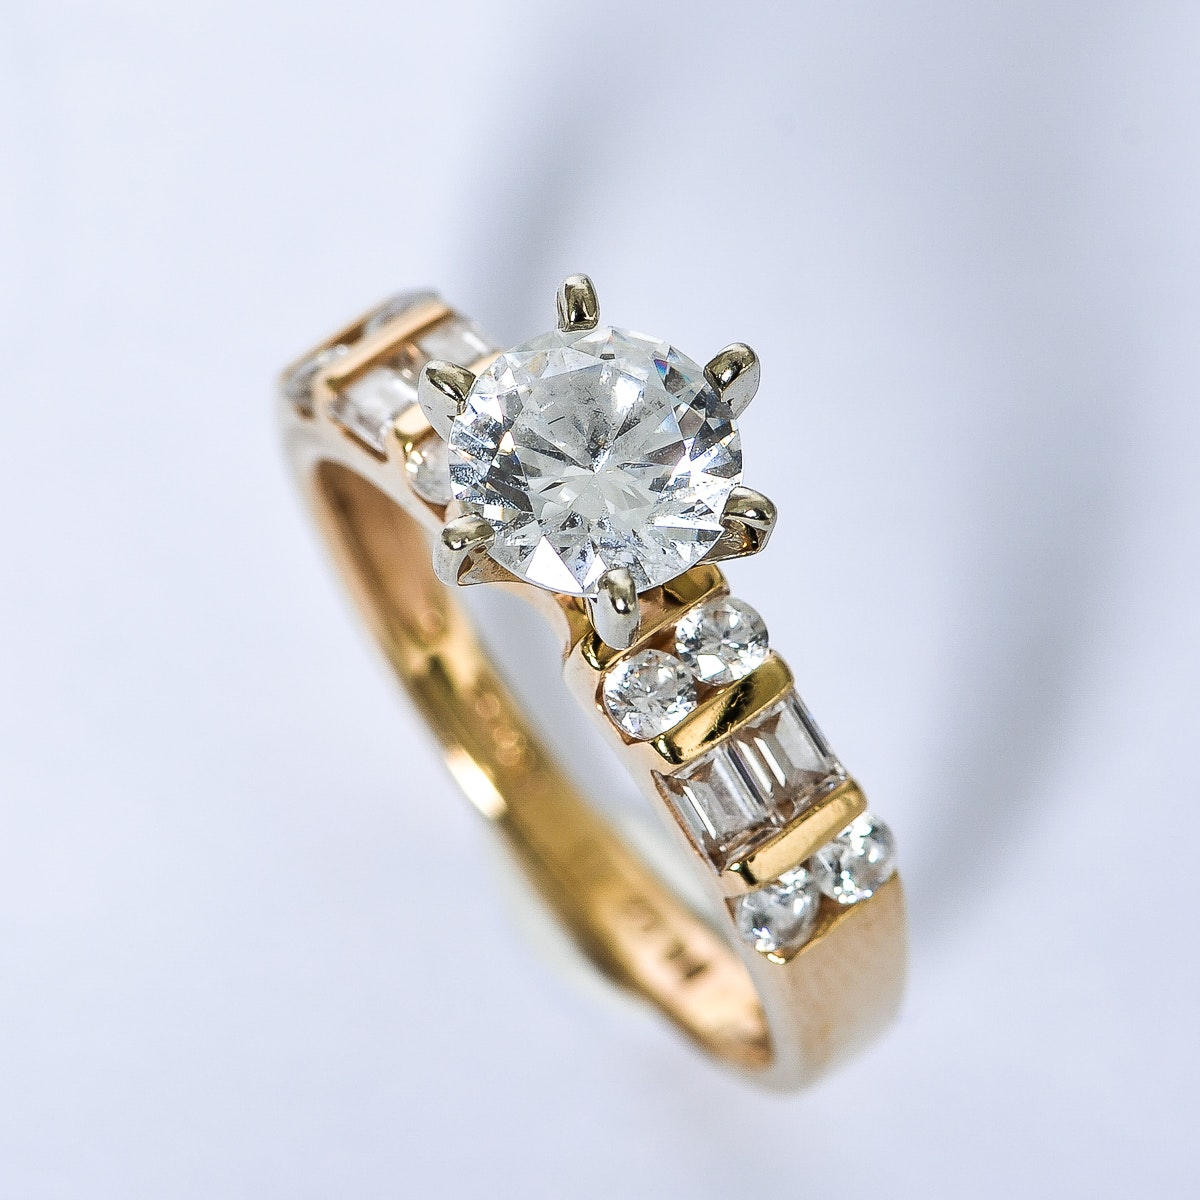 14K Yellow Gold and Cubic Zirconia Engagement Ring